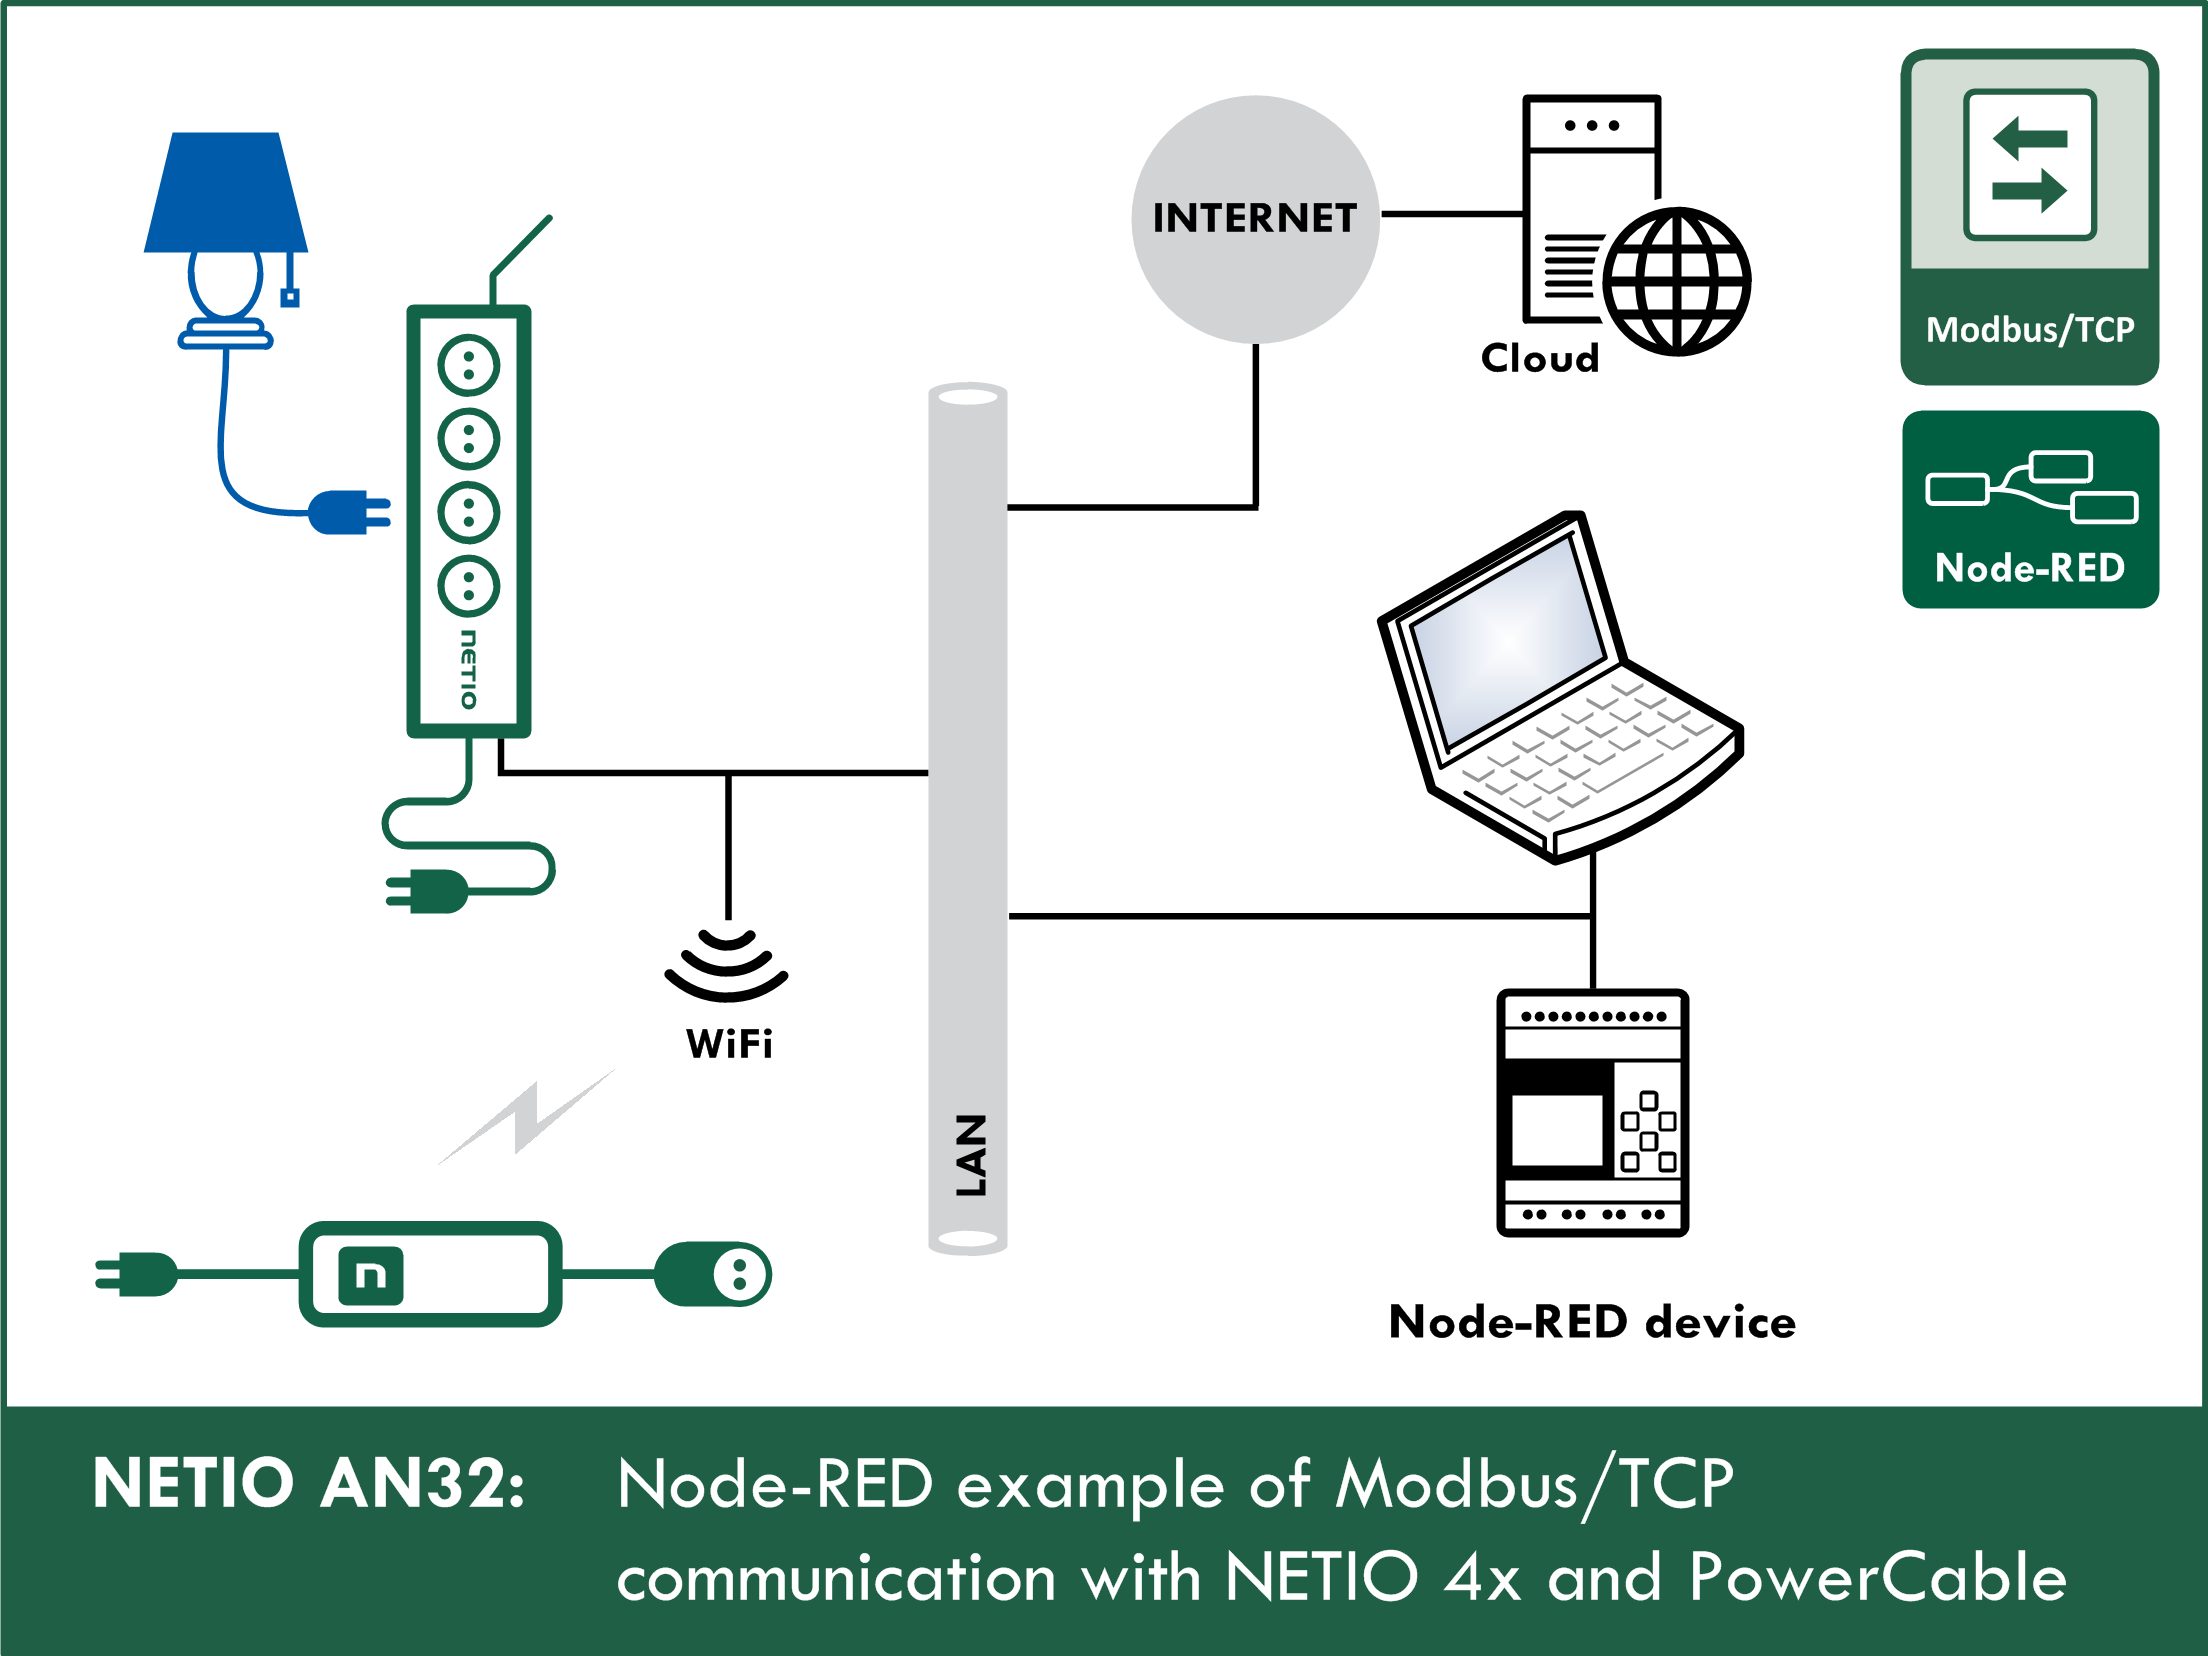 Node-RED example of Modbus/TCP communication with NETIO 4x / PowerCable